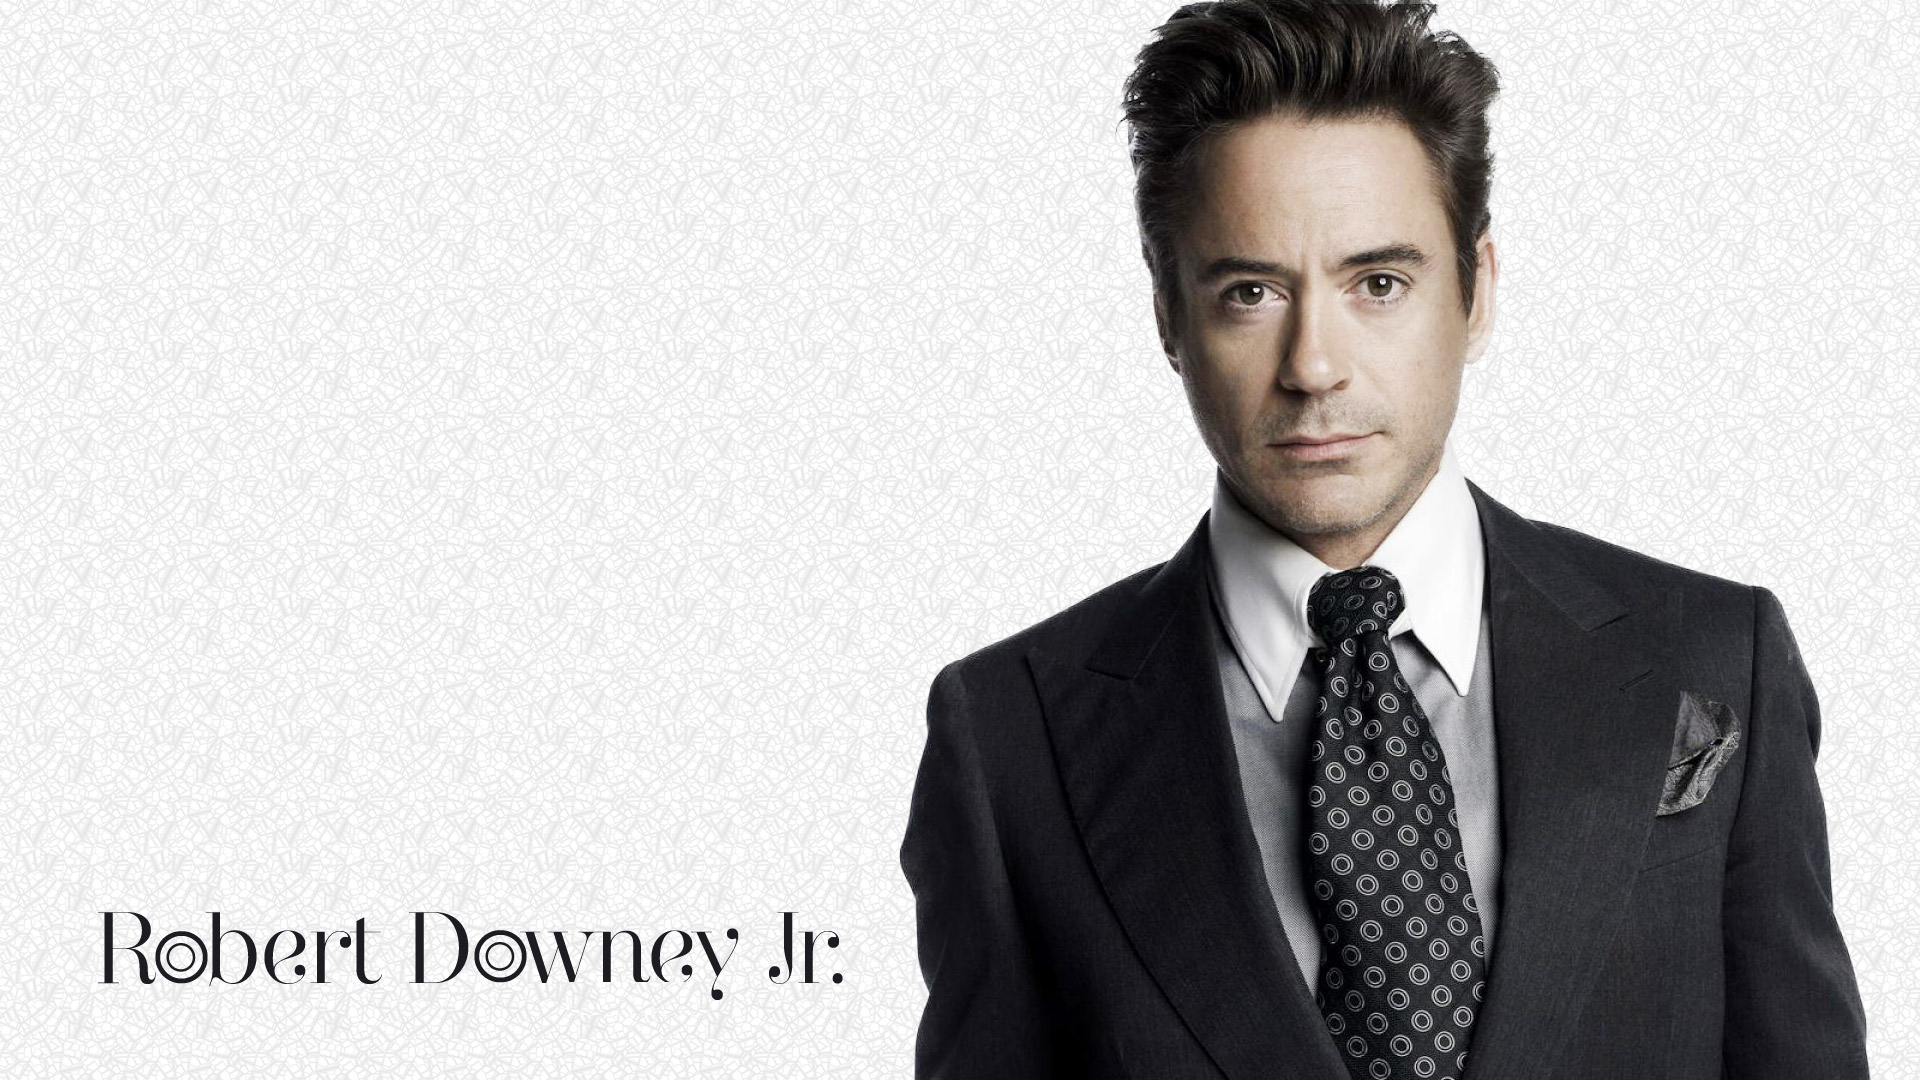 Free hd wallpaper robert downey jr - Robert Downey Jr Hd Desktop